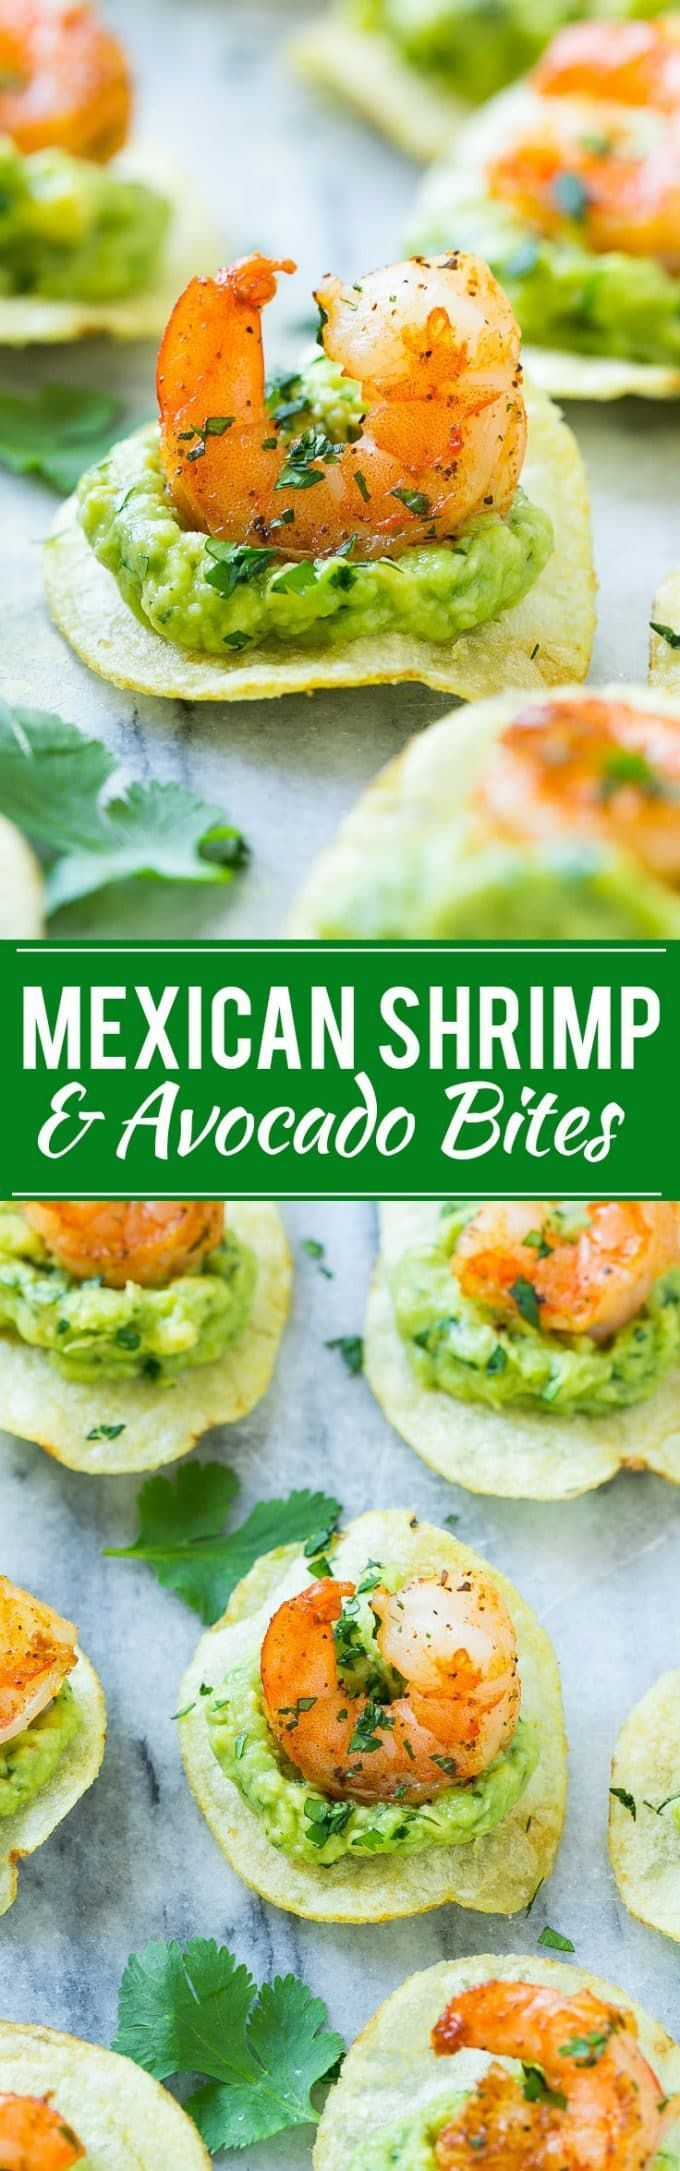 Mexican Shrimp Bites Recipe | Easy Shrimp Recipe | Shrimp Appetizer | Mexican Shrimp